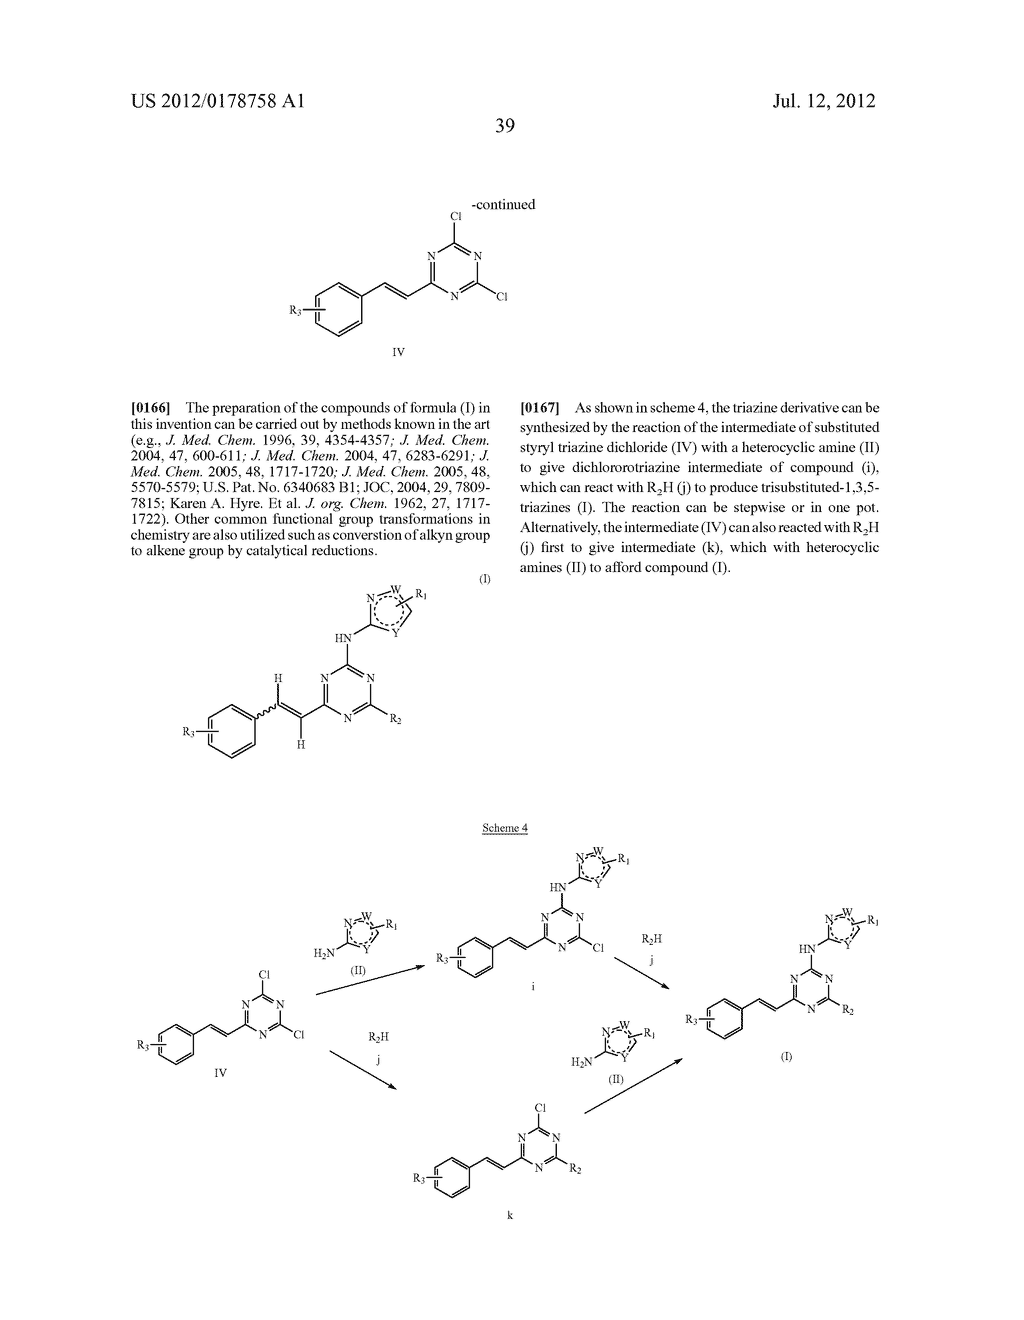 STYRYL-TRIAZINE DERIVATIVES AND THEIR THERAPEUTICAL APPLICATIONS - diagram, schematic, and image 40